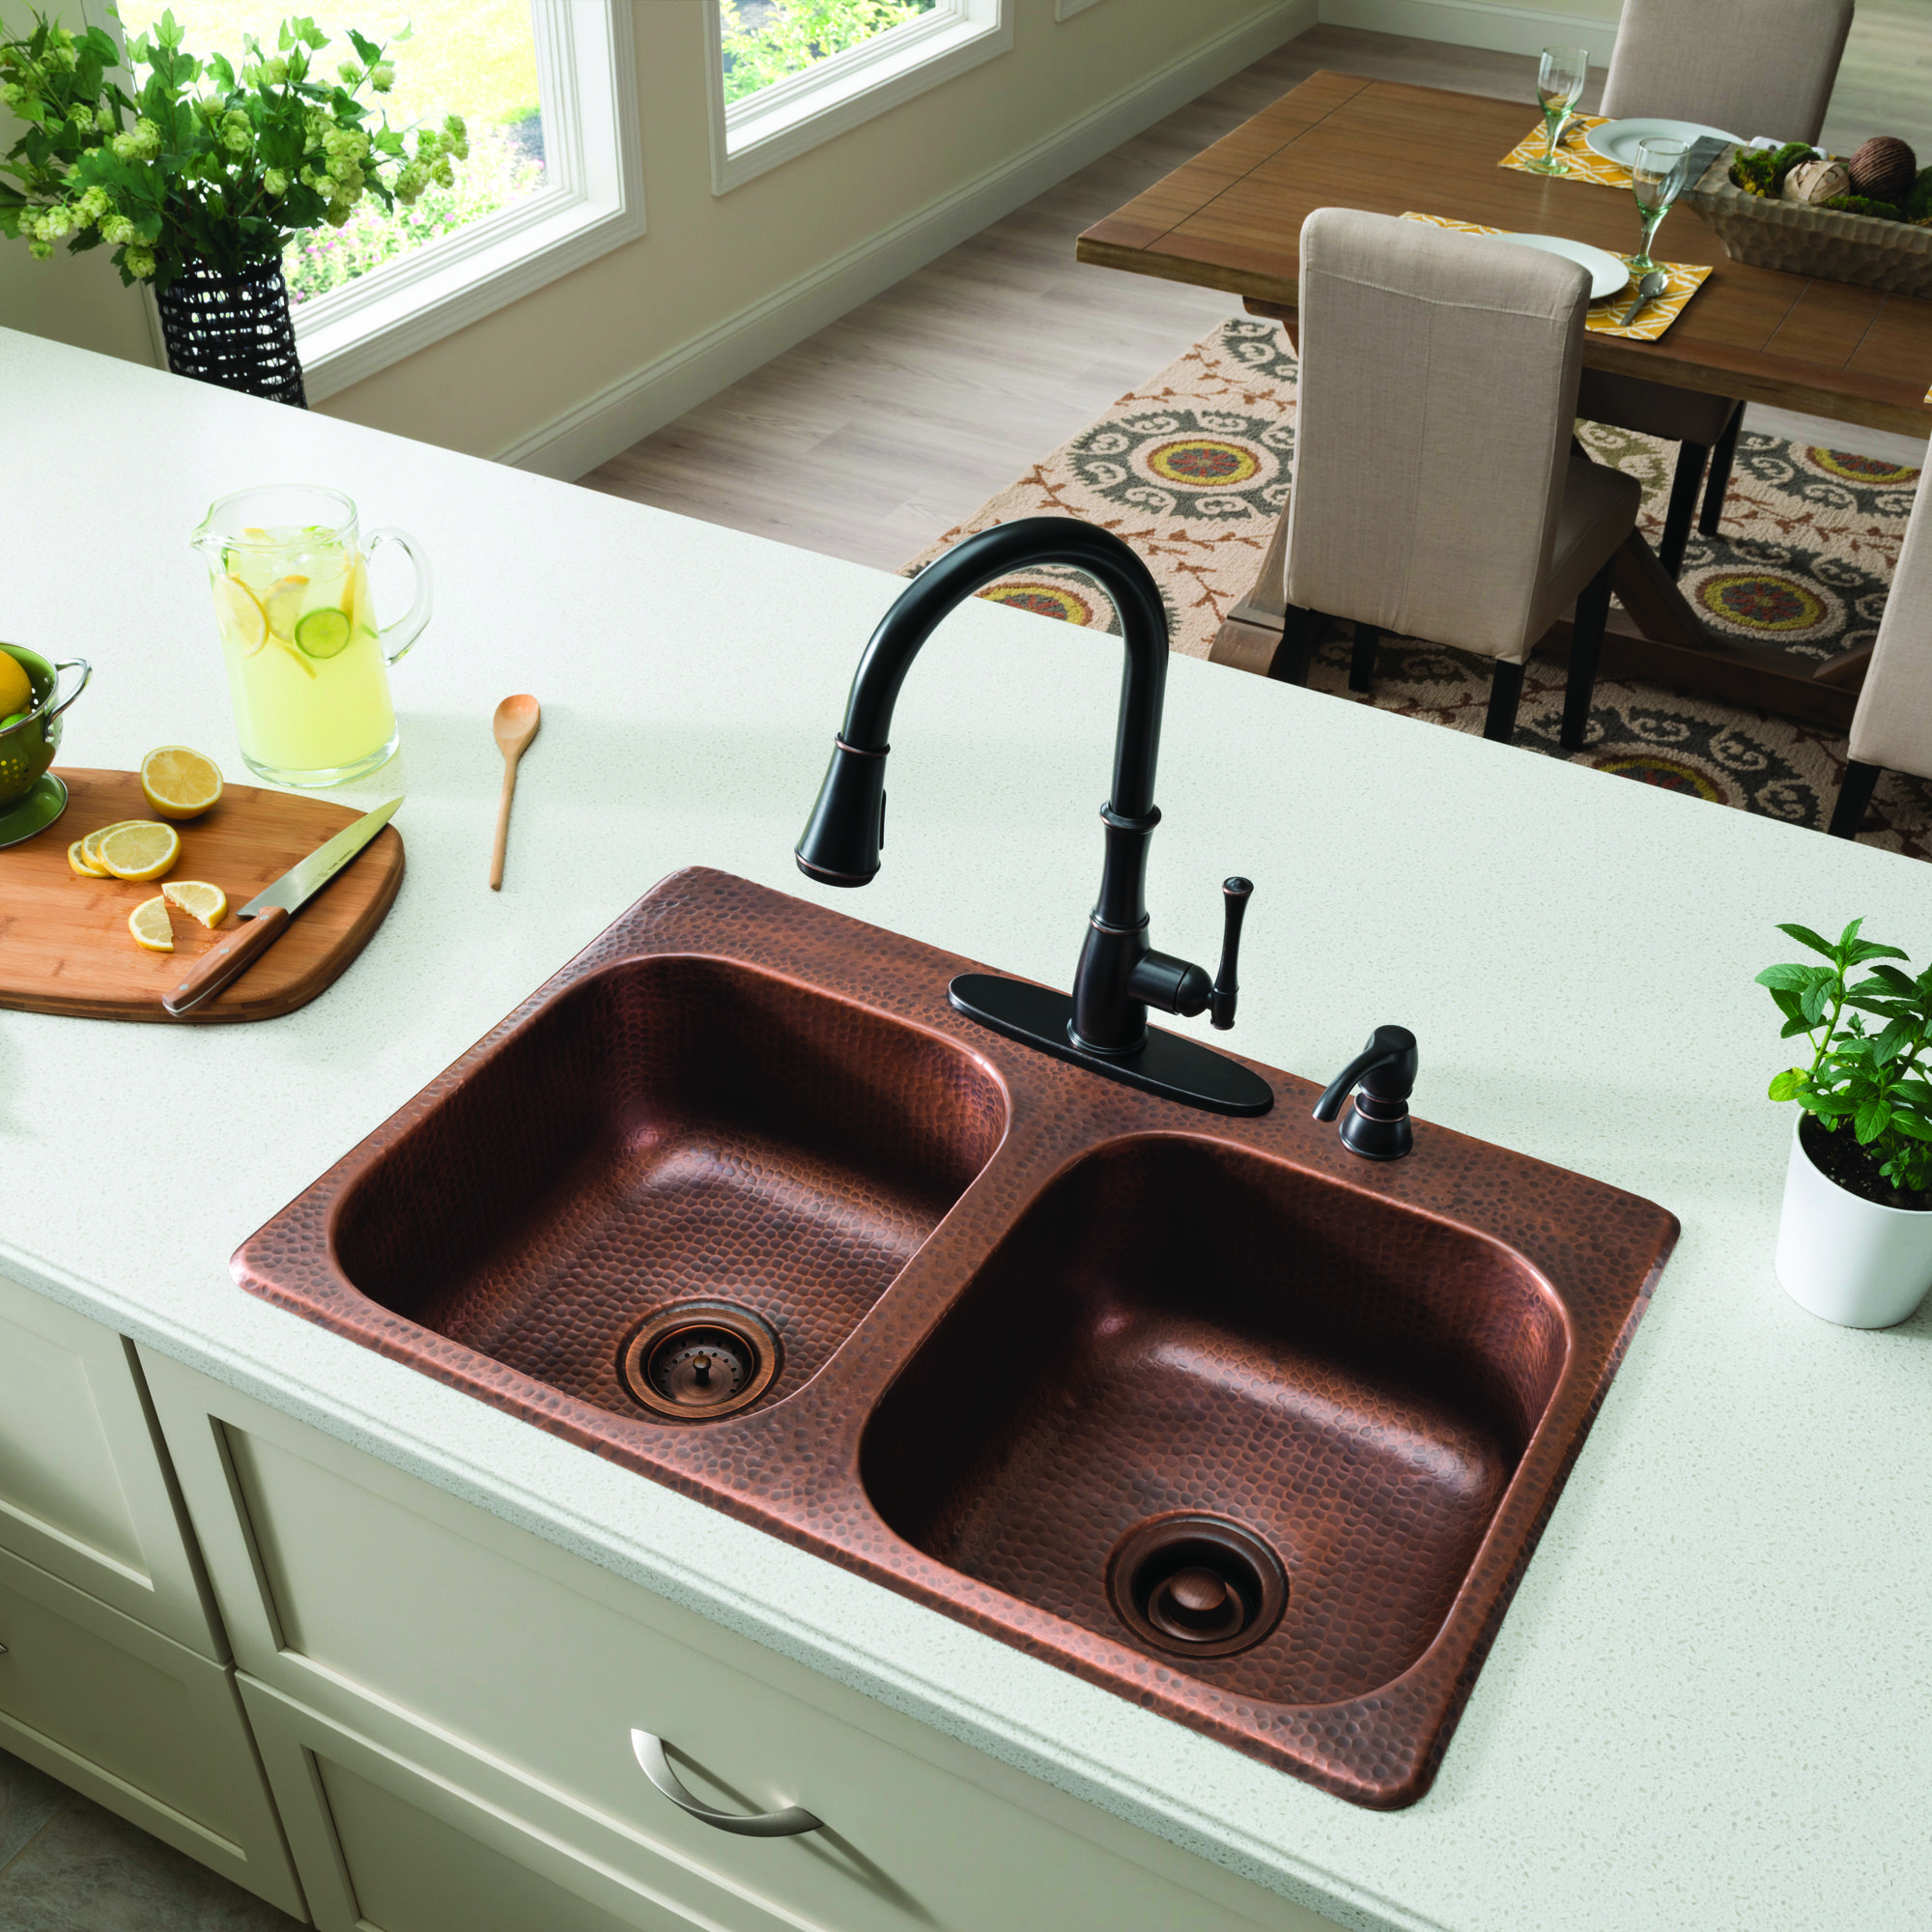 Replace Your Old Boring Kitchen Sink With A Sinkology Drop In